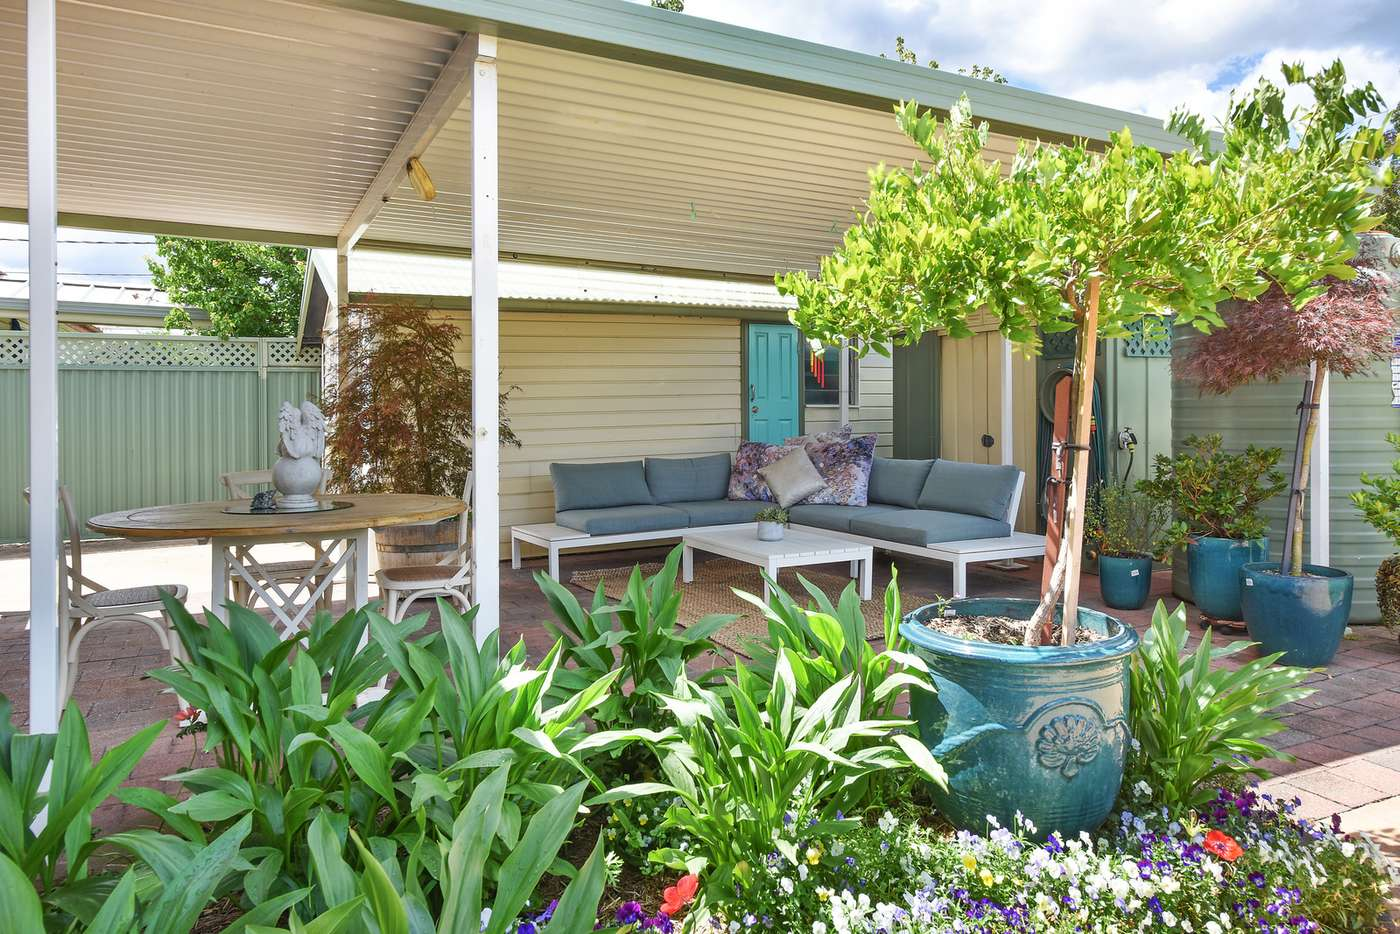 Sixth view of Homely house listing, 4 Amiens Street, Littleton NSW 2790